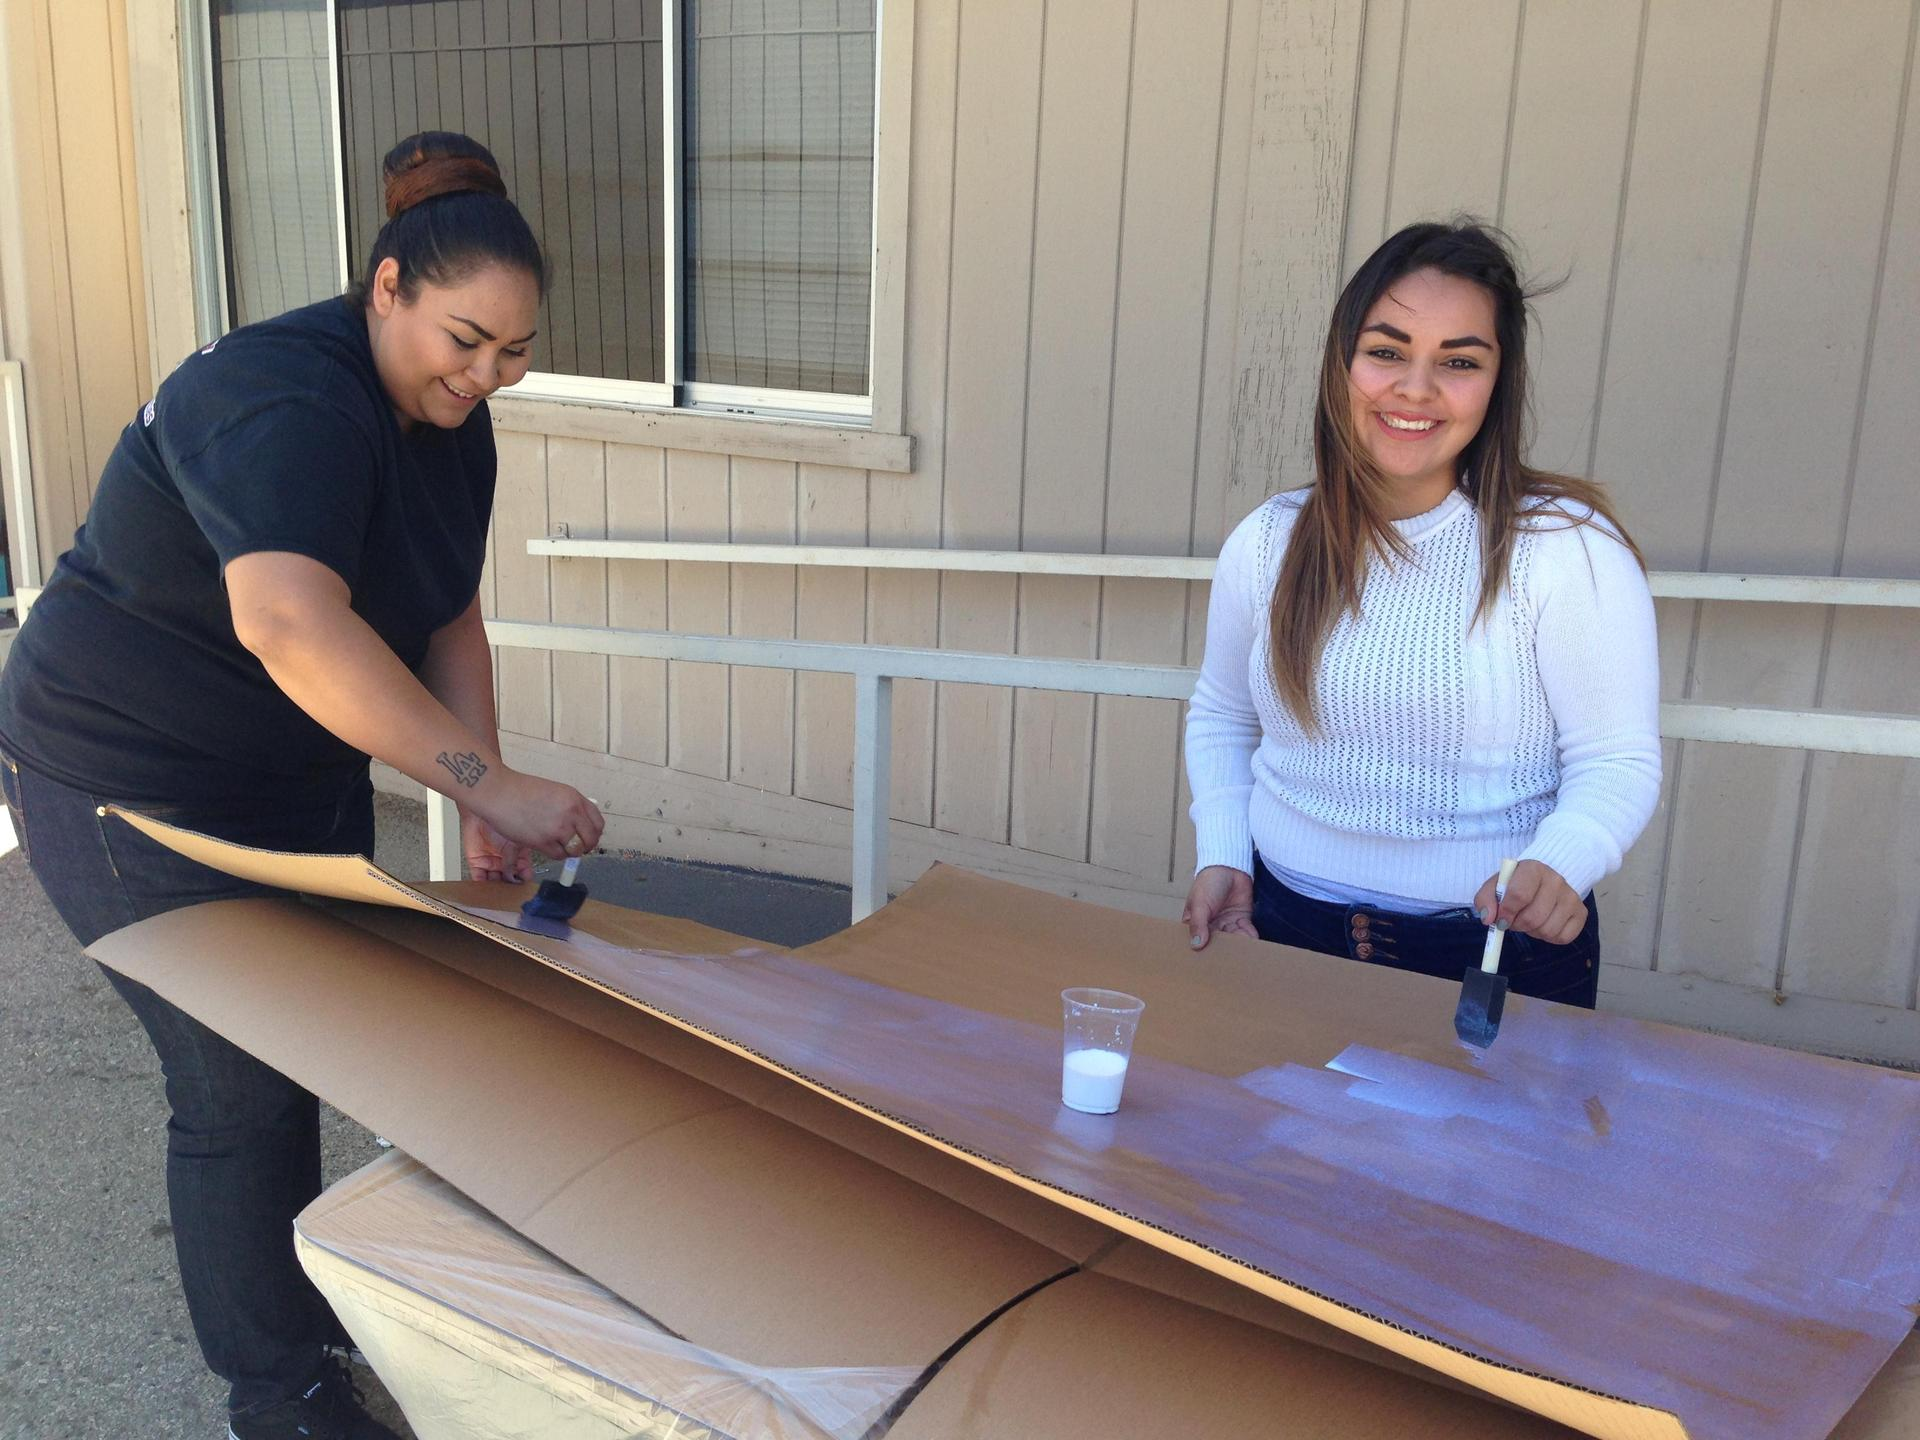 Palmdale students paint their cardboard boat